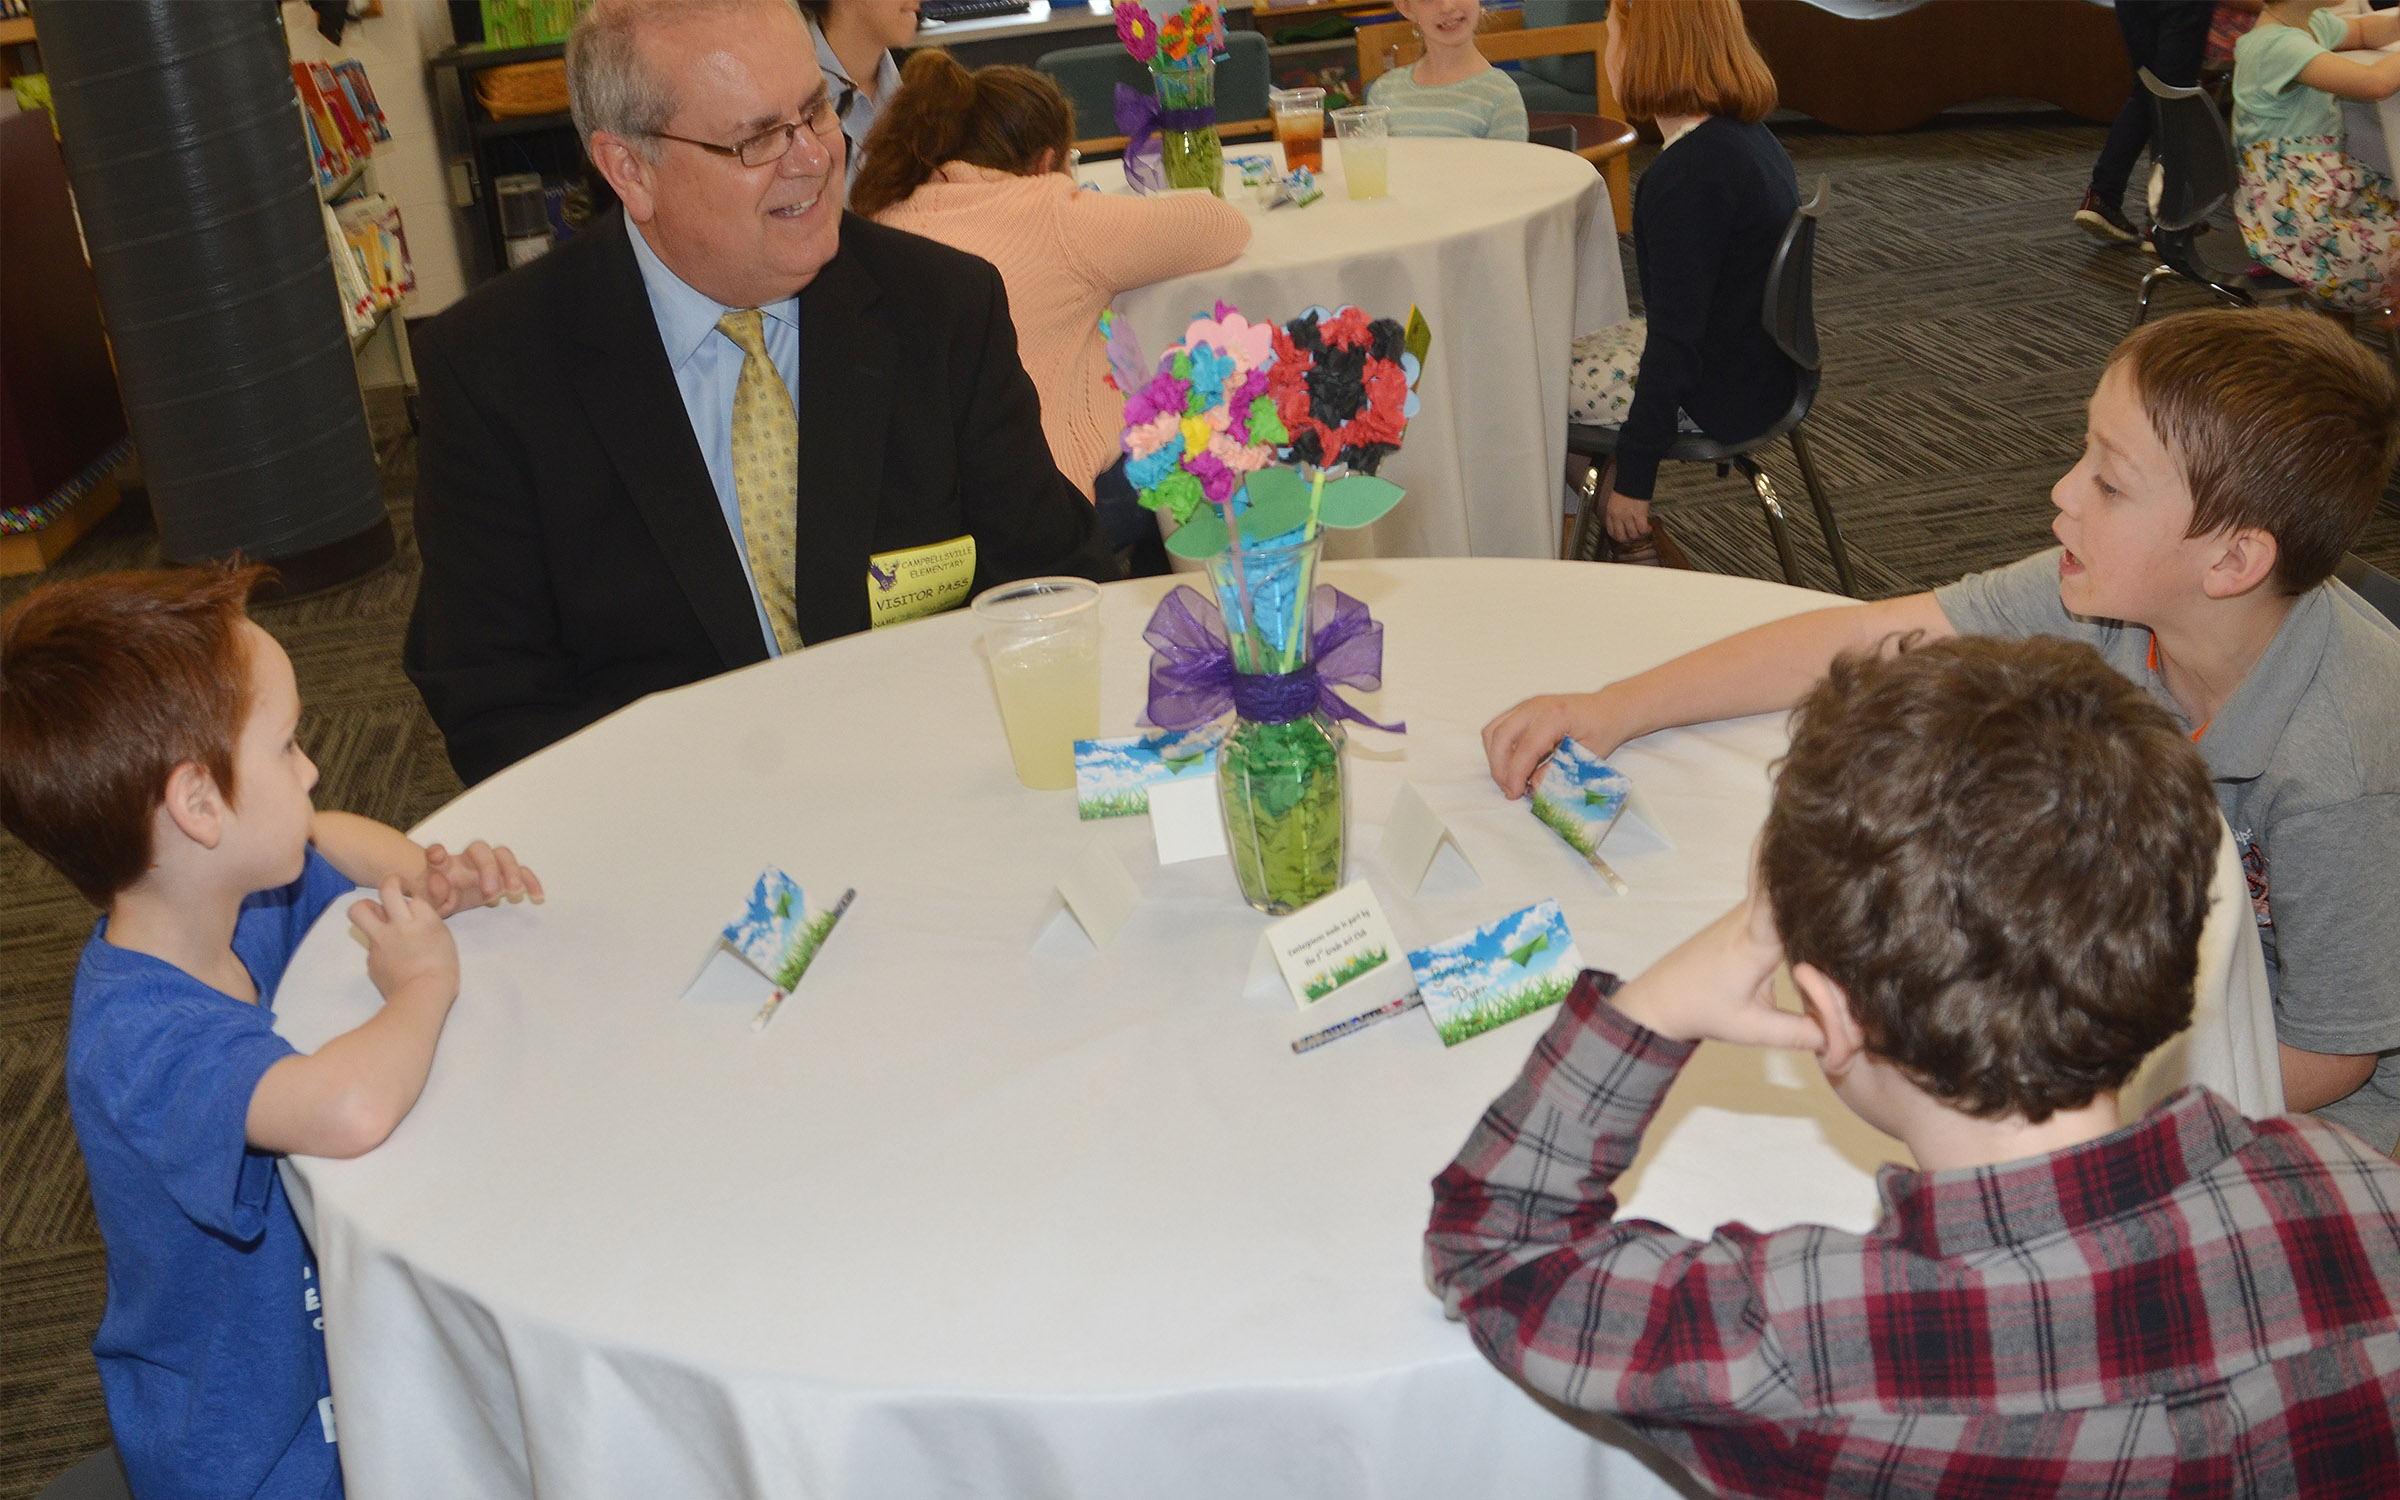 Campbellsville Mayor Tony Young has lunch with, from left, kindergarteners Carson Montes and Braydan Dyer and first-grader Jacob Golden.